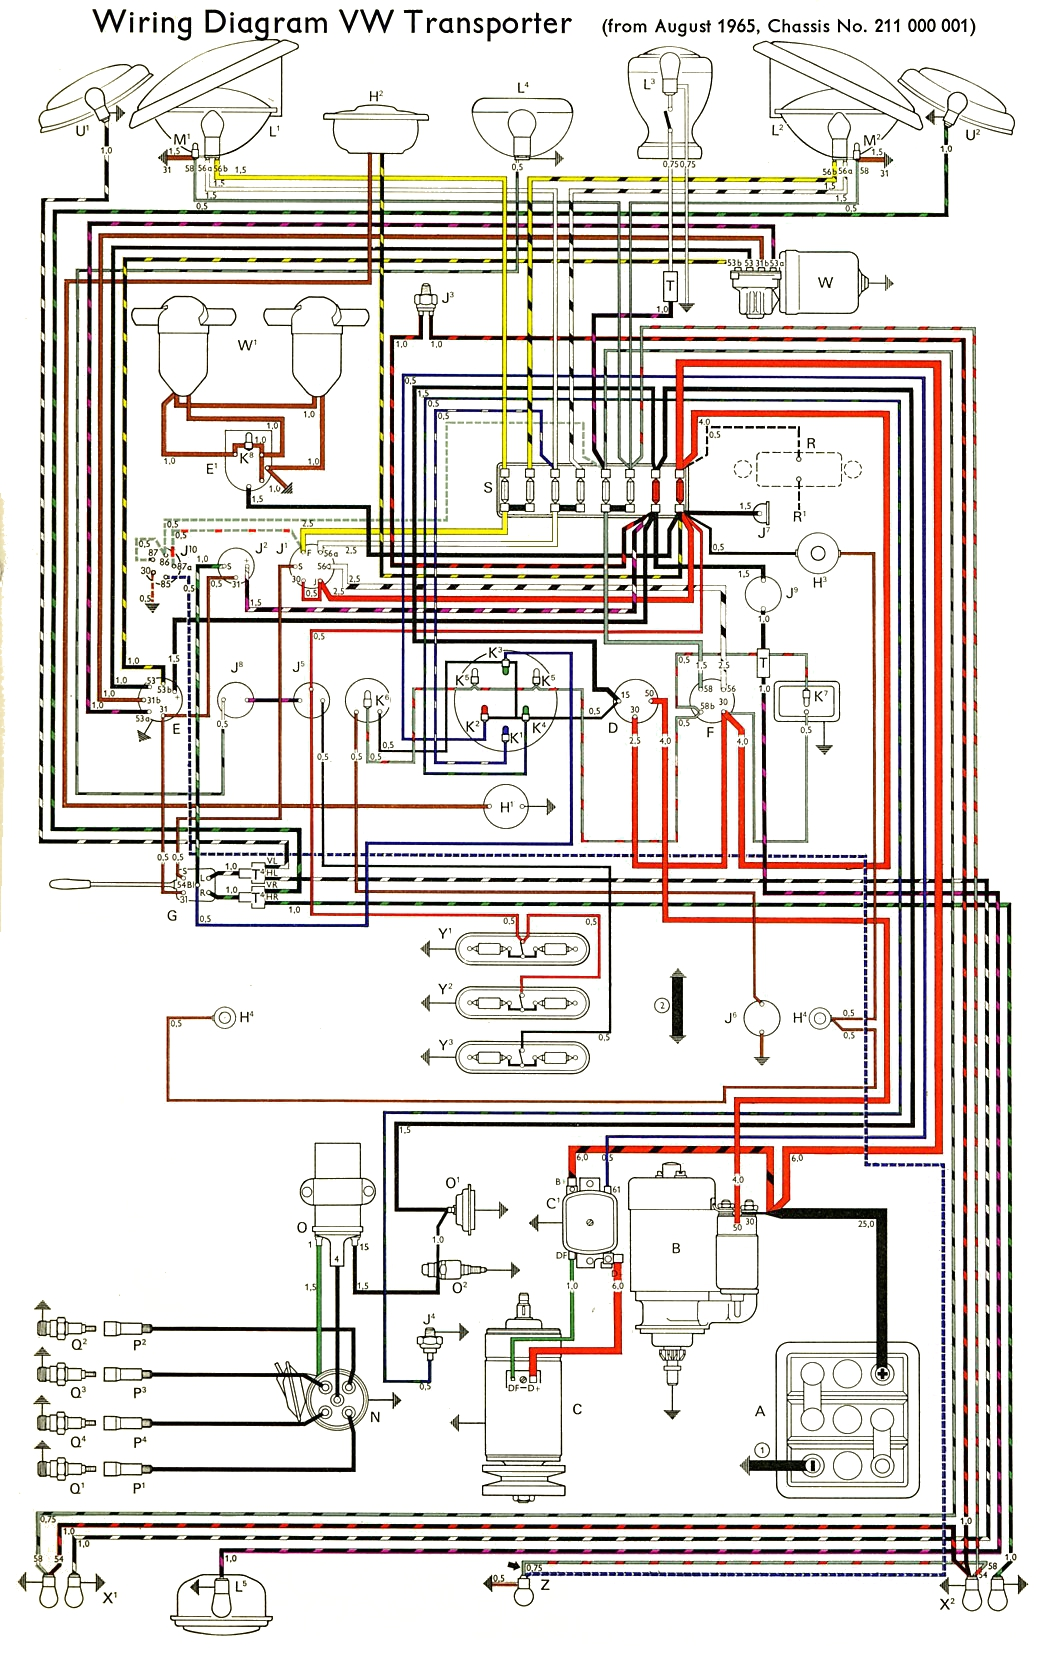 universal relay wiring diagram t8 electronic ballast 70 vw type 3 get free image about